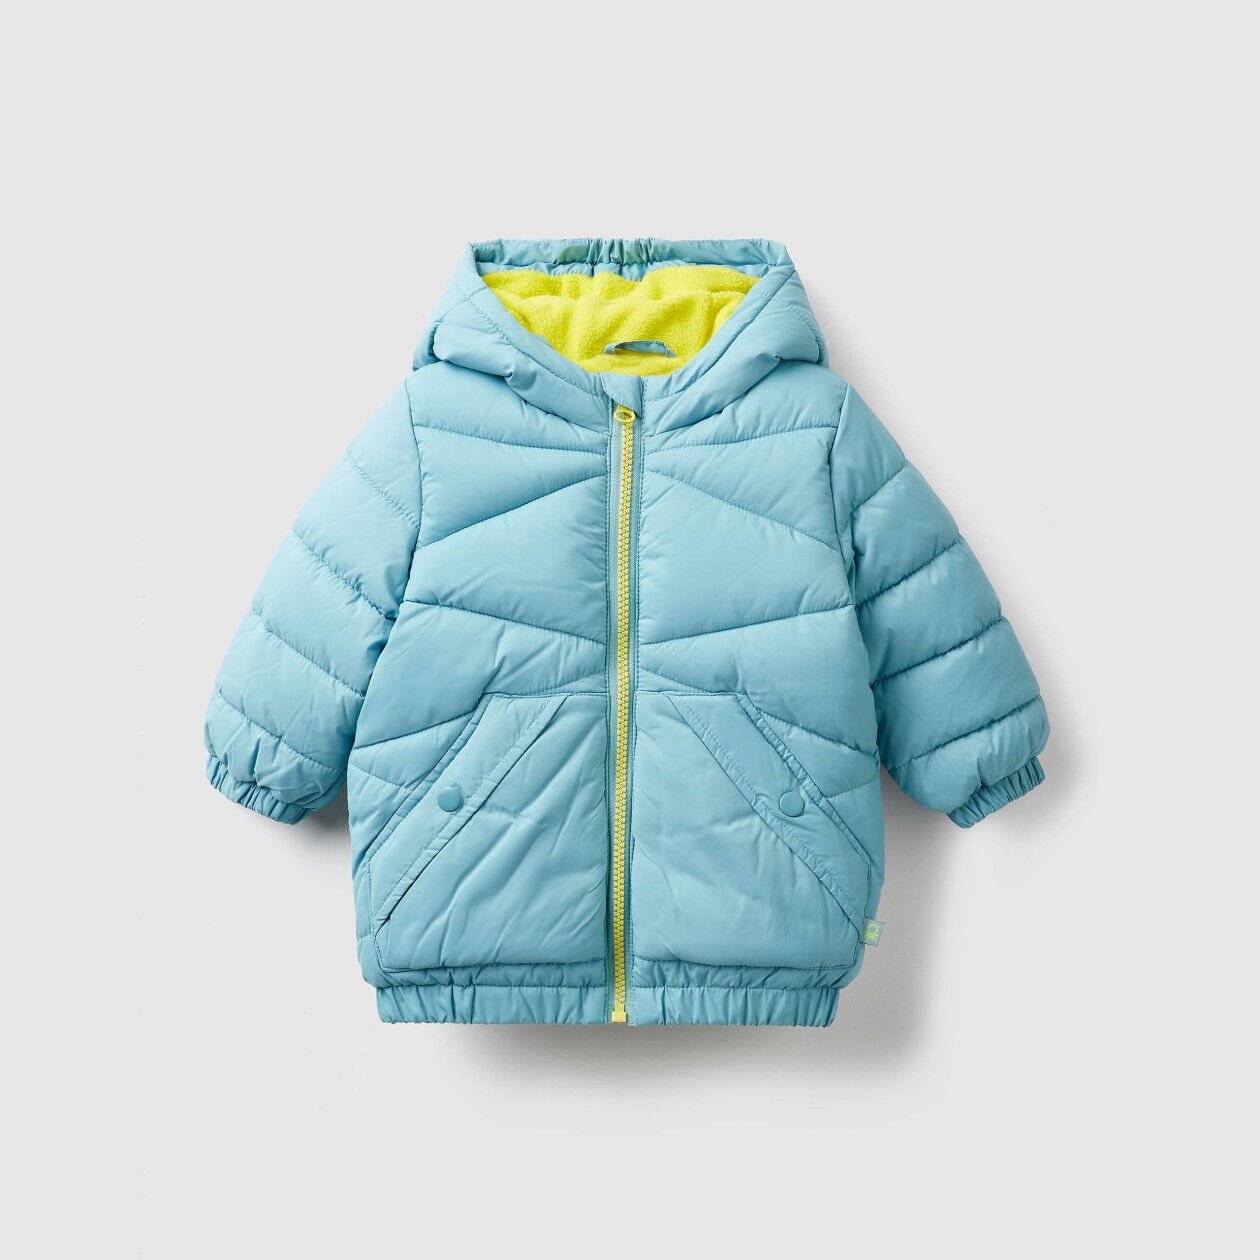 Padded jacket with fur lining